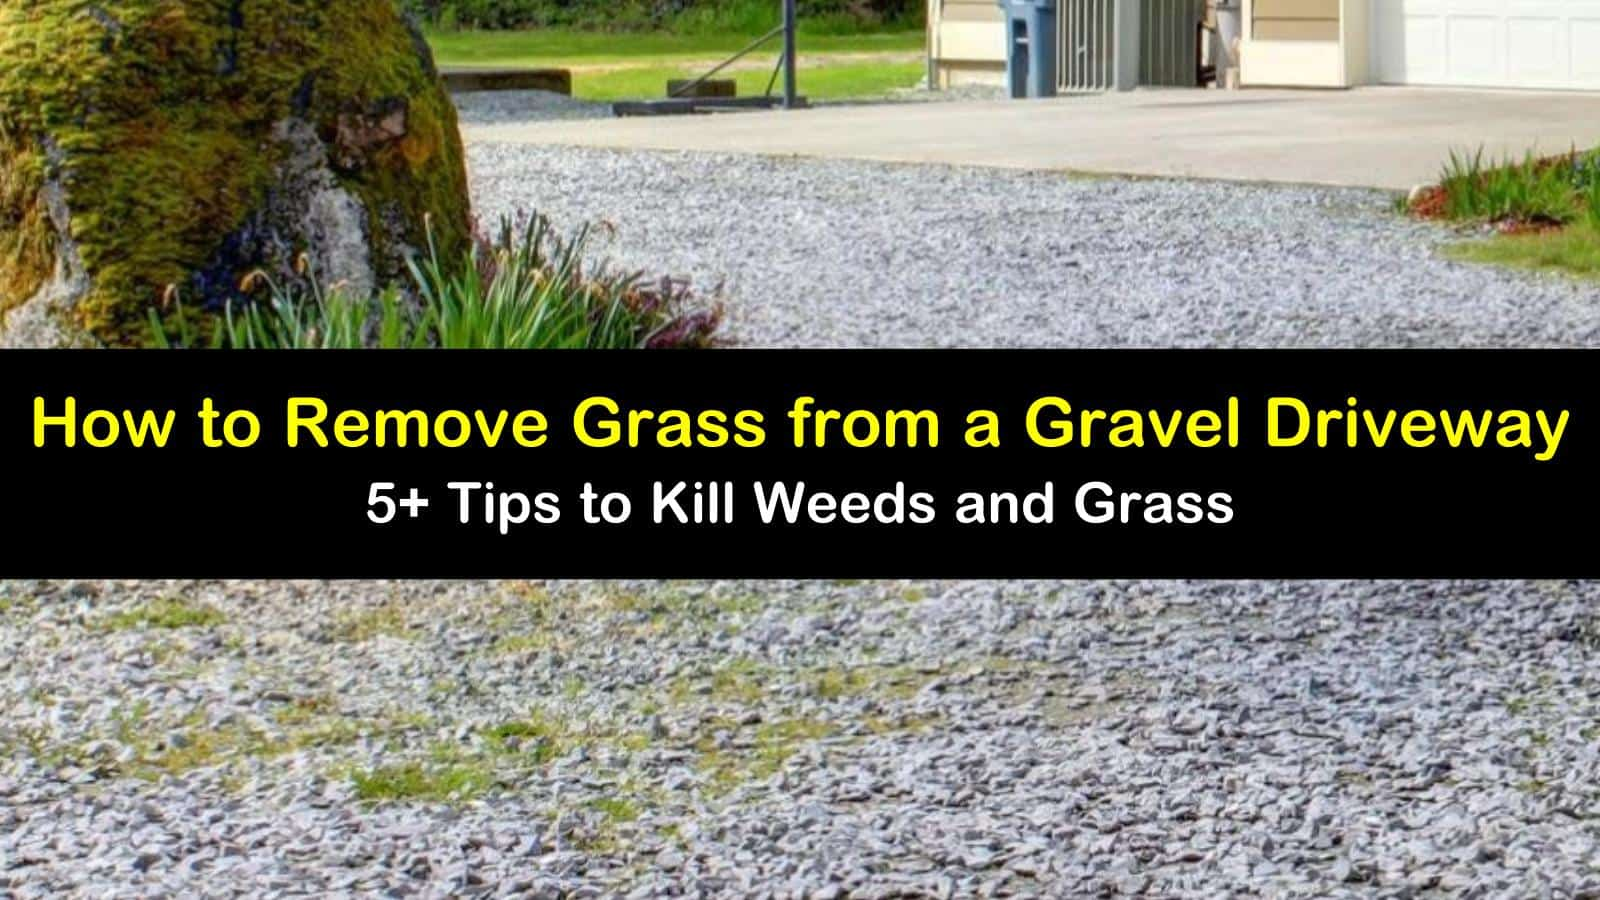 how to remove grass from a gravel driveway titleimg1